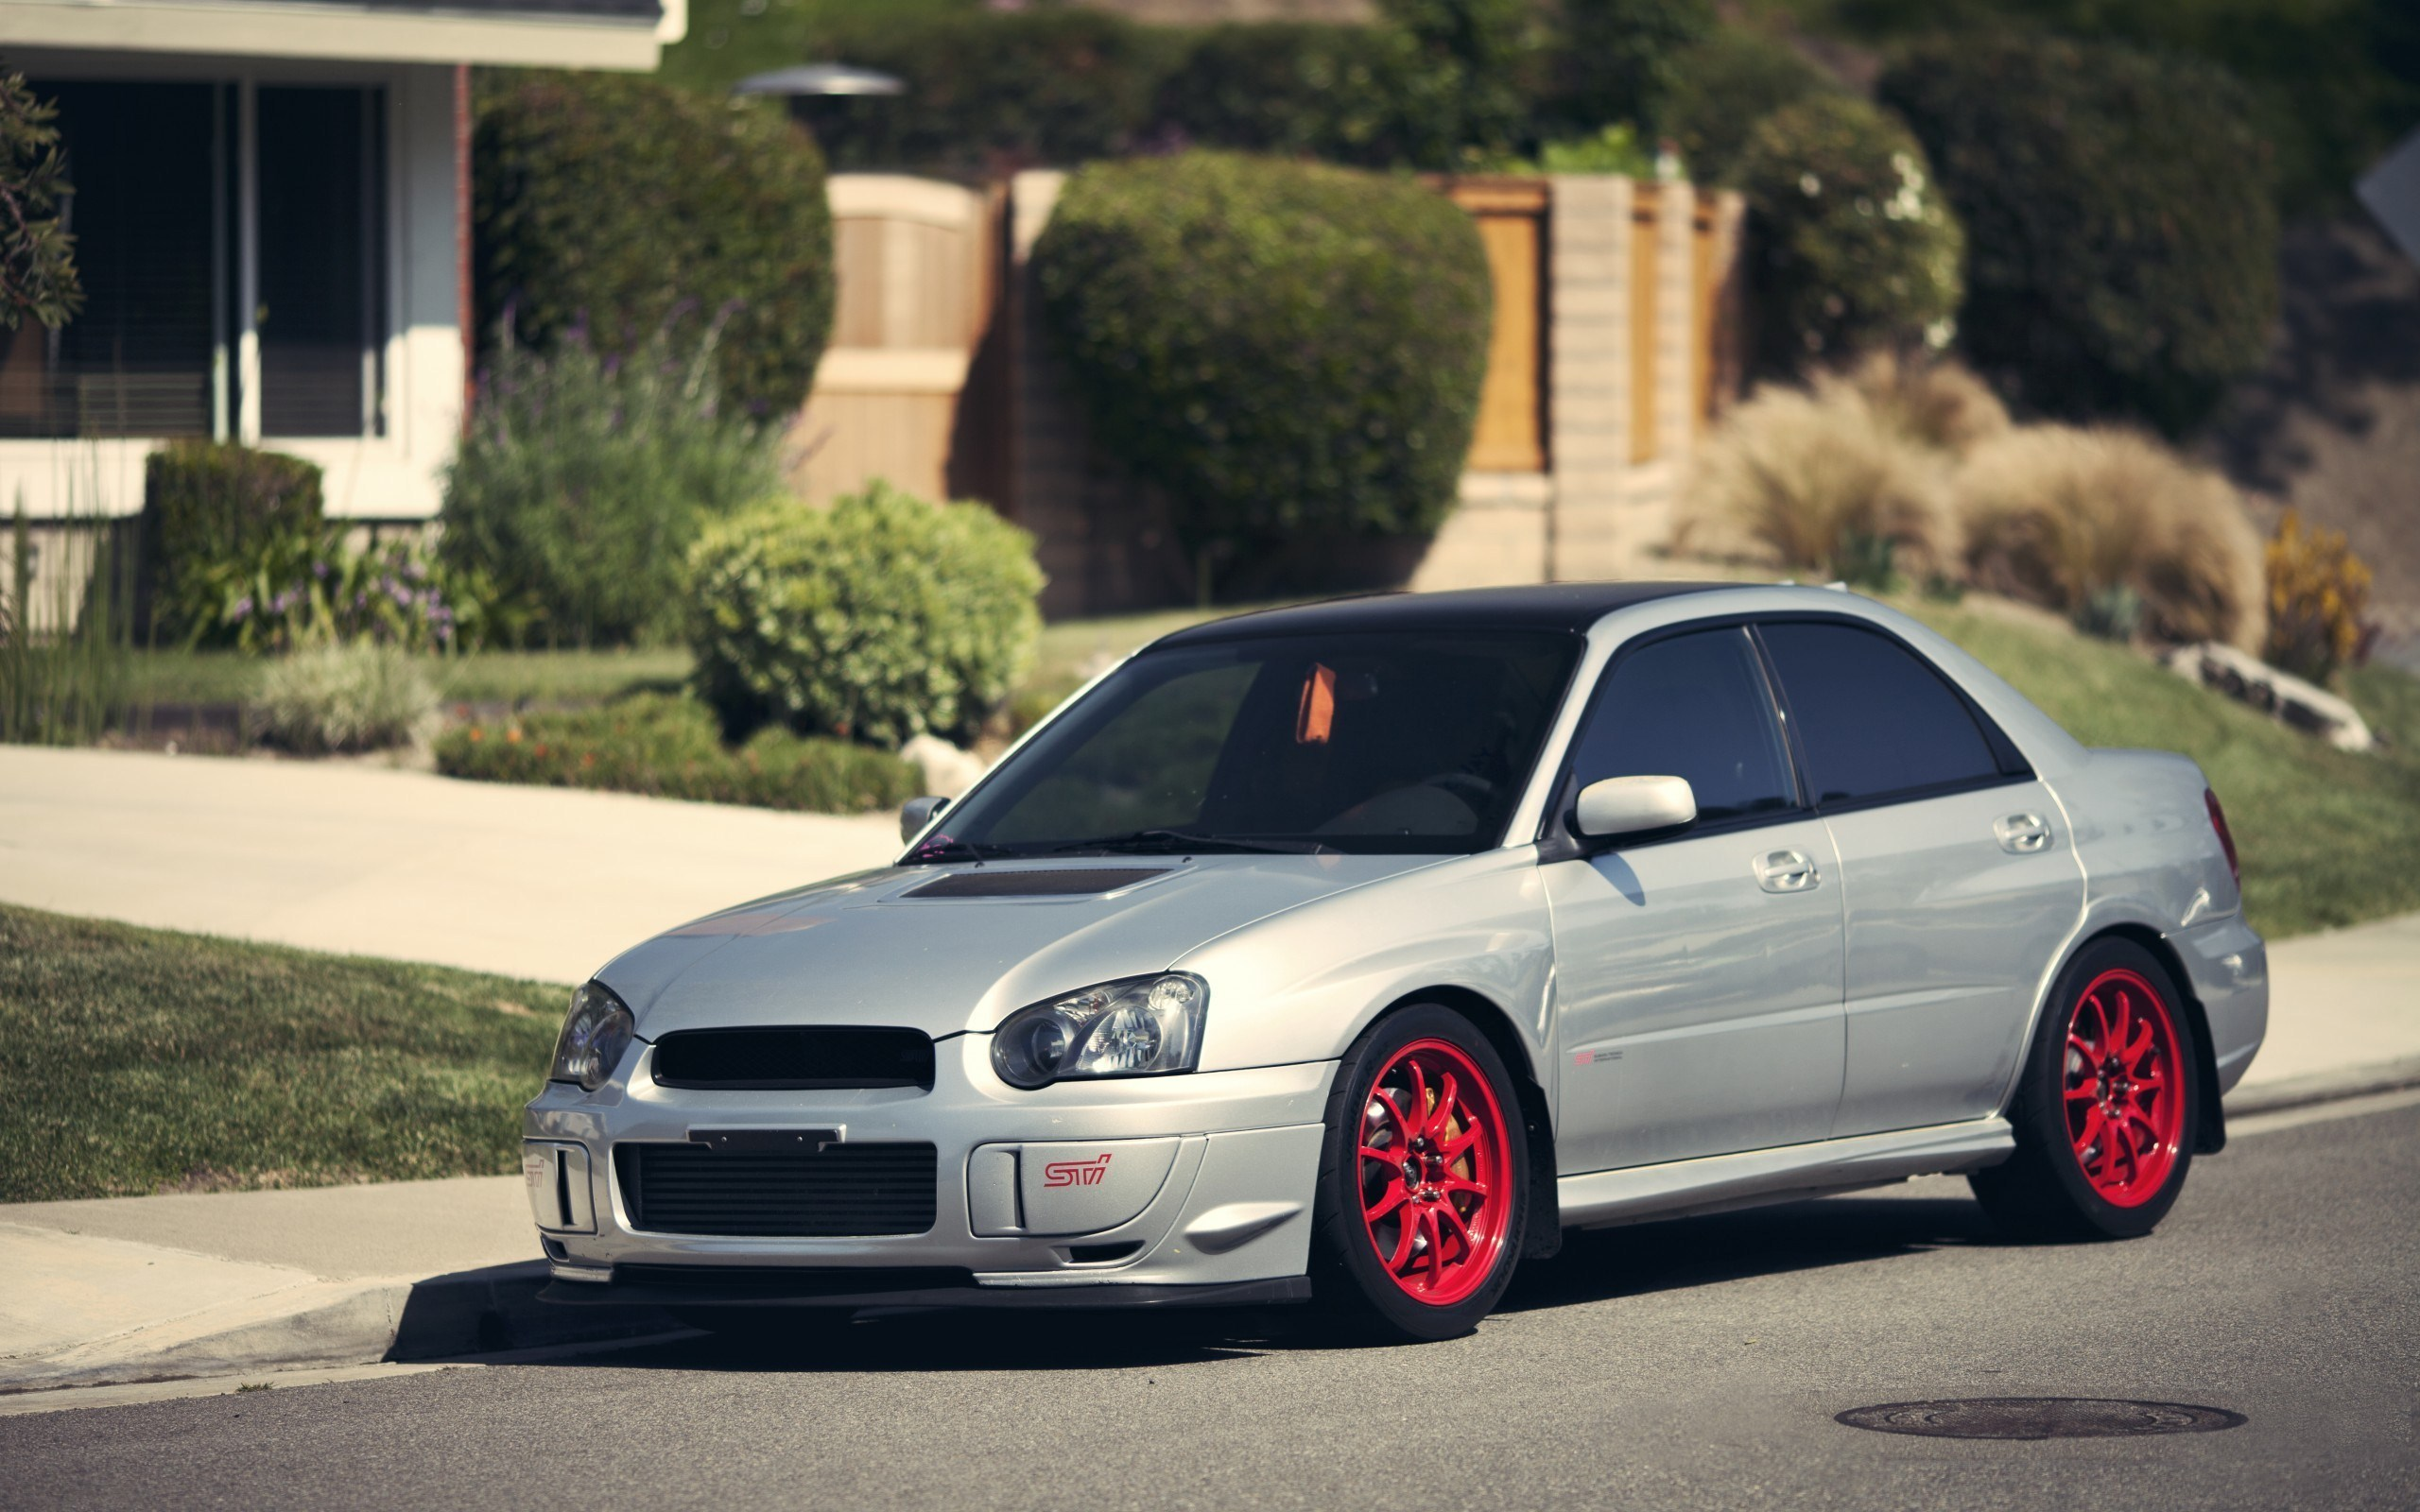 Subaru Impreza WRX STI Red Wheels